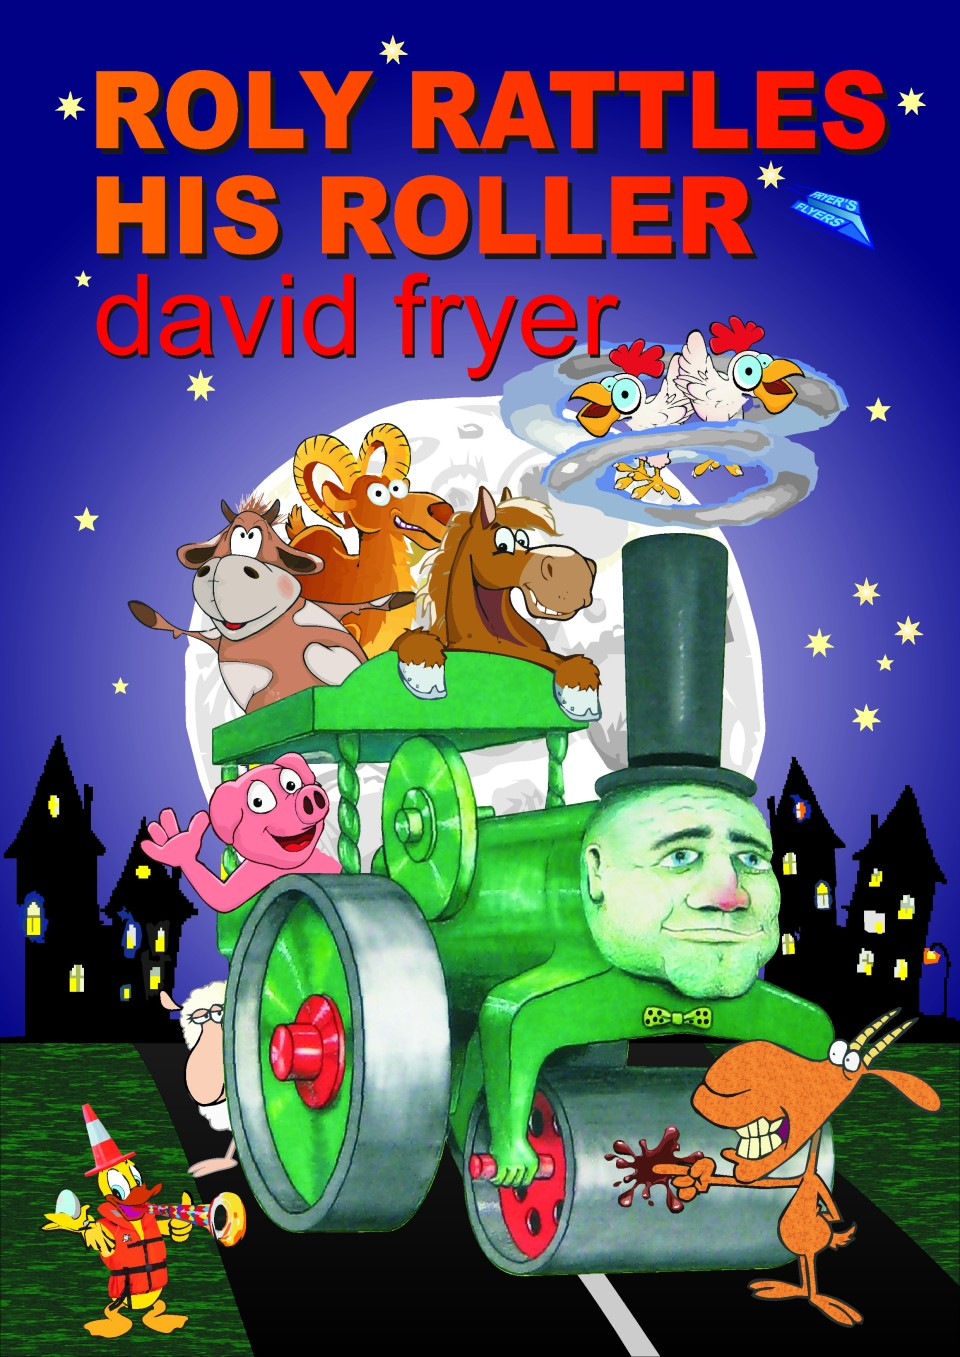 Roly Rattles His Roller, Cover (2)